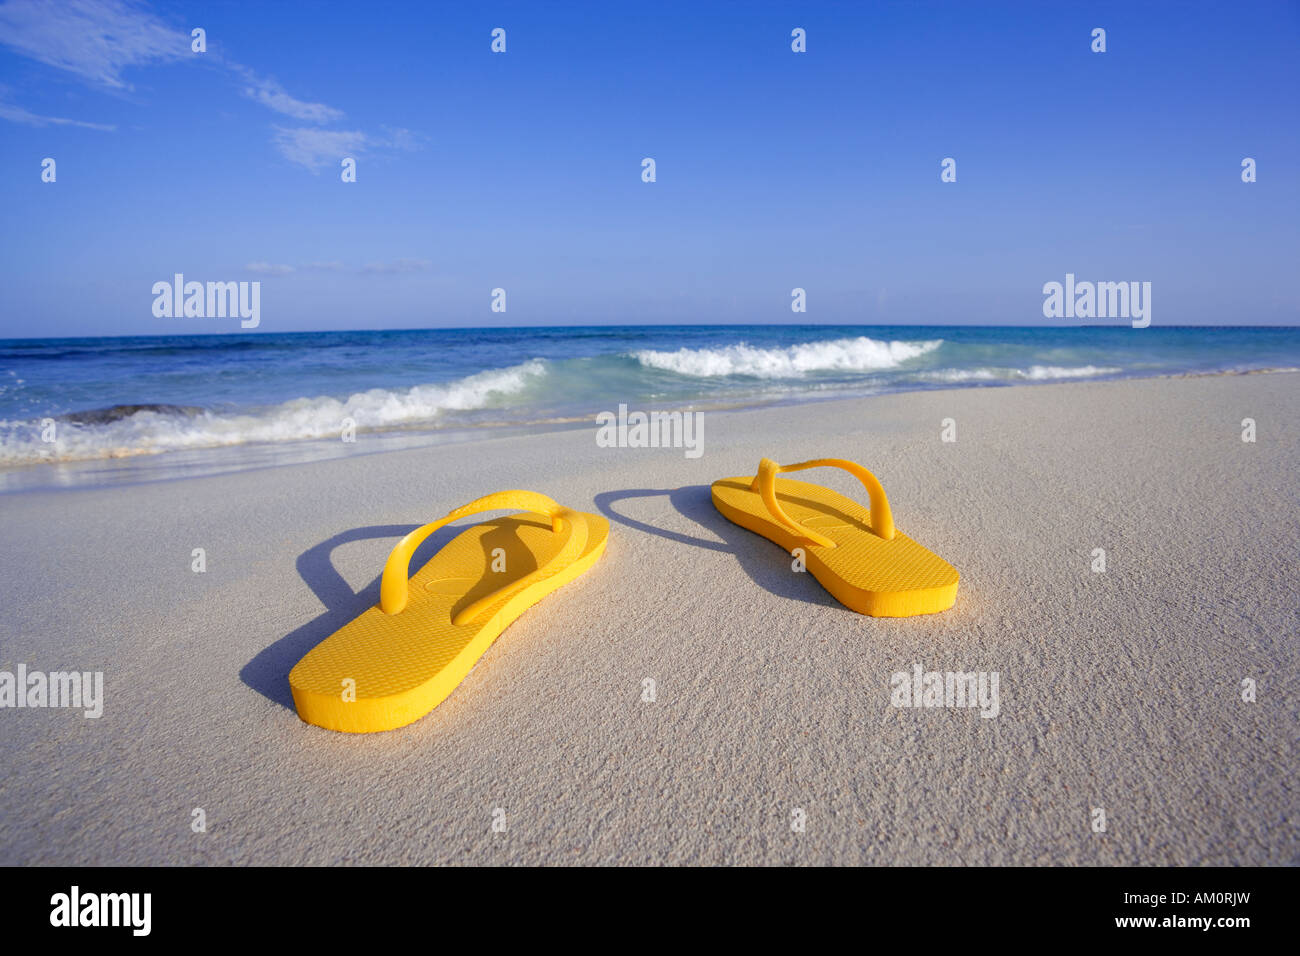 Pair of yellow flip flop sandals on beach near waters edge in Playa del Carmen, Mexico - Stock Image